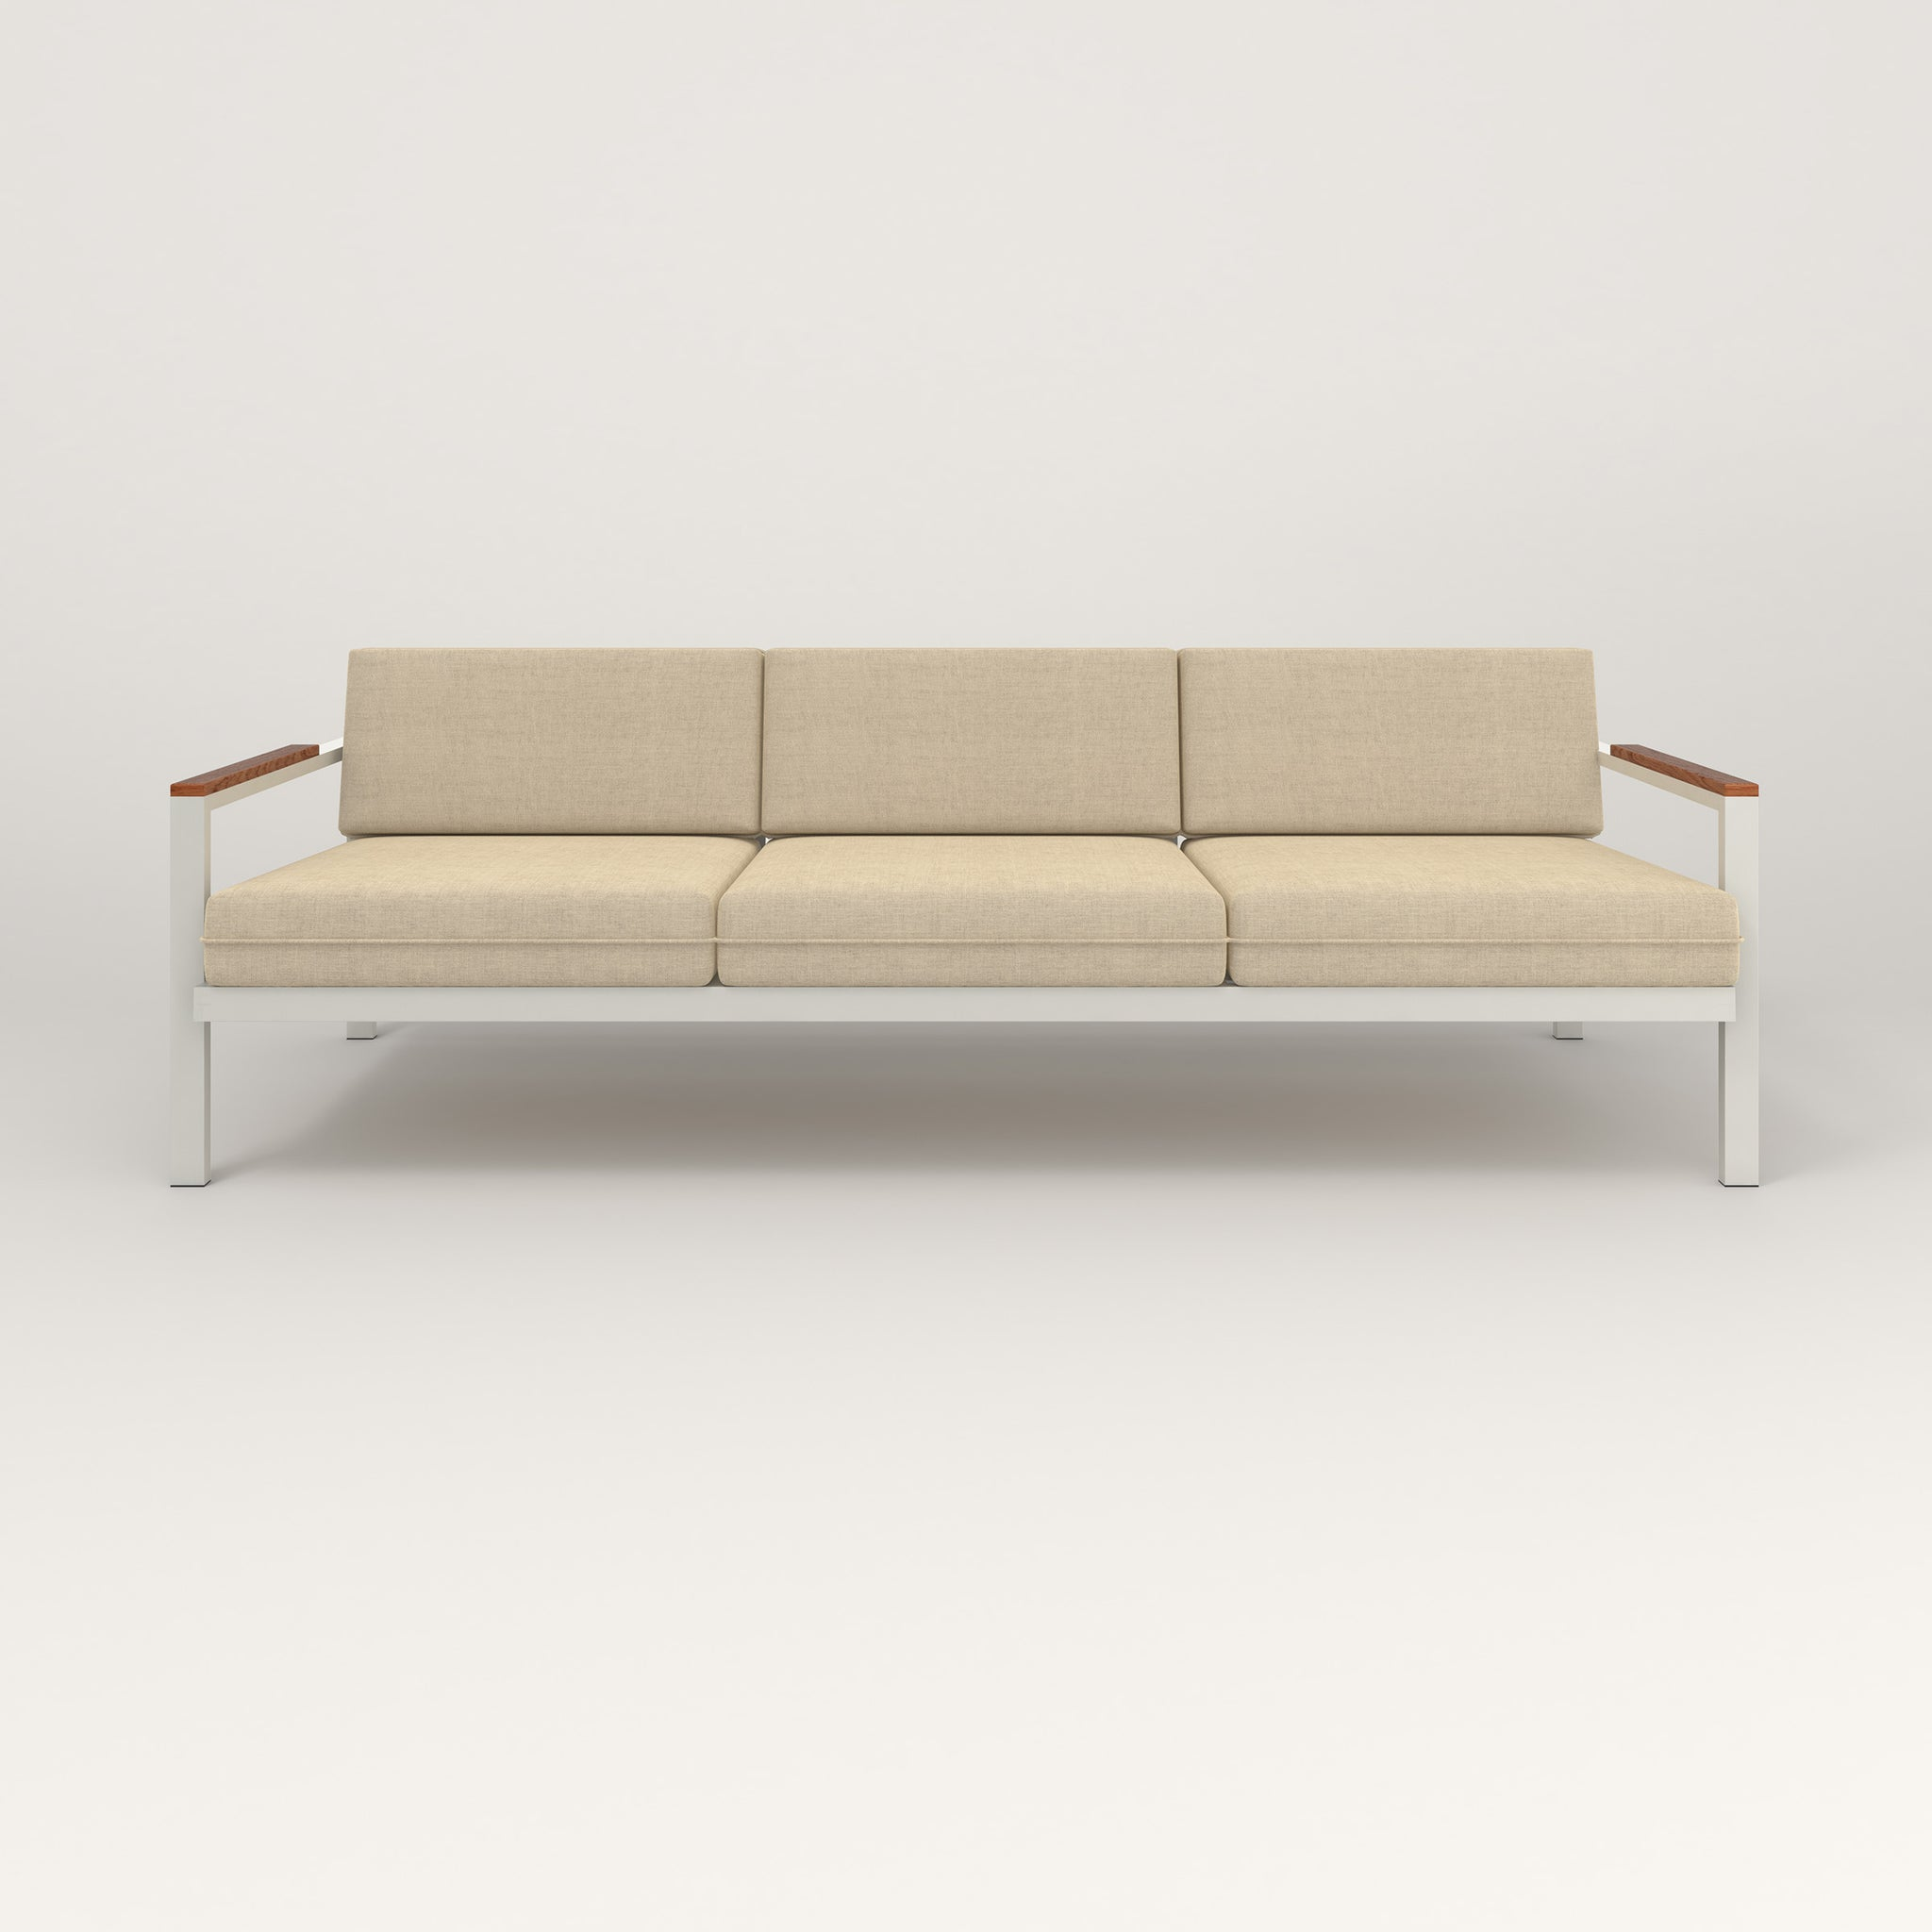 RAD Square Sofa — Large in white powder coat.